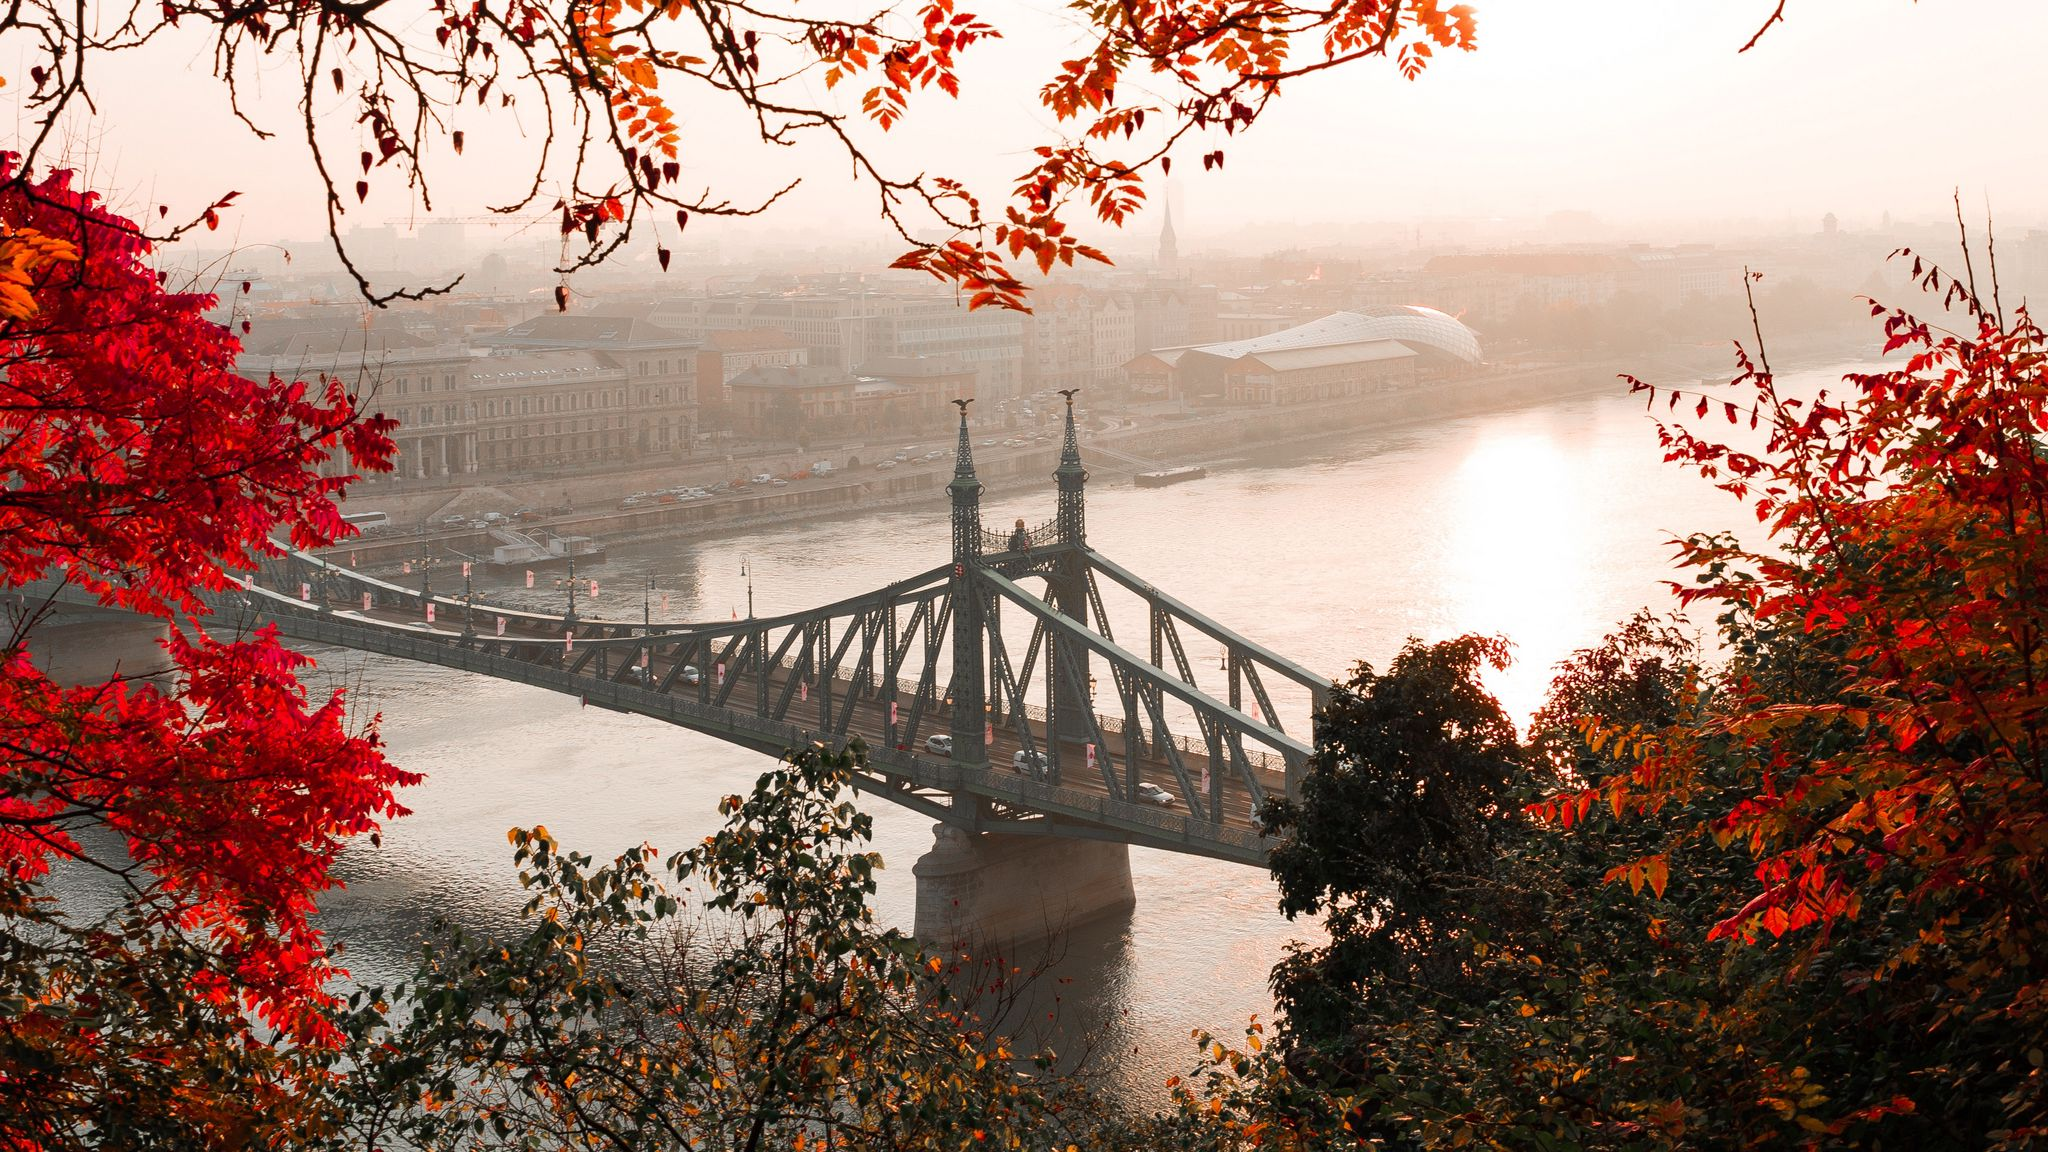 2048x1152 Wallpaper bridge, autumn, city, citadella, budapest, hungary